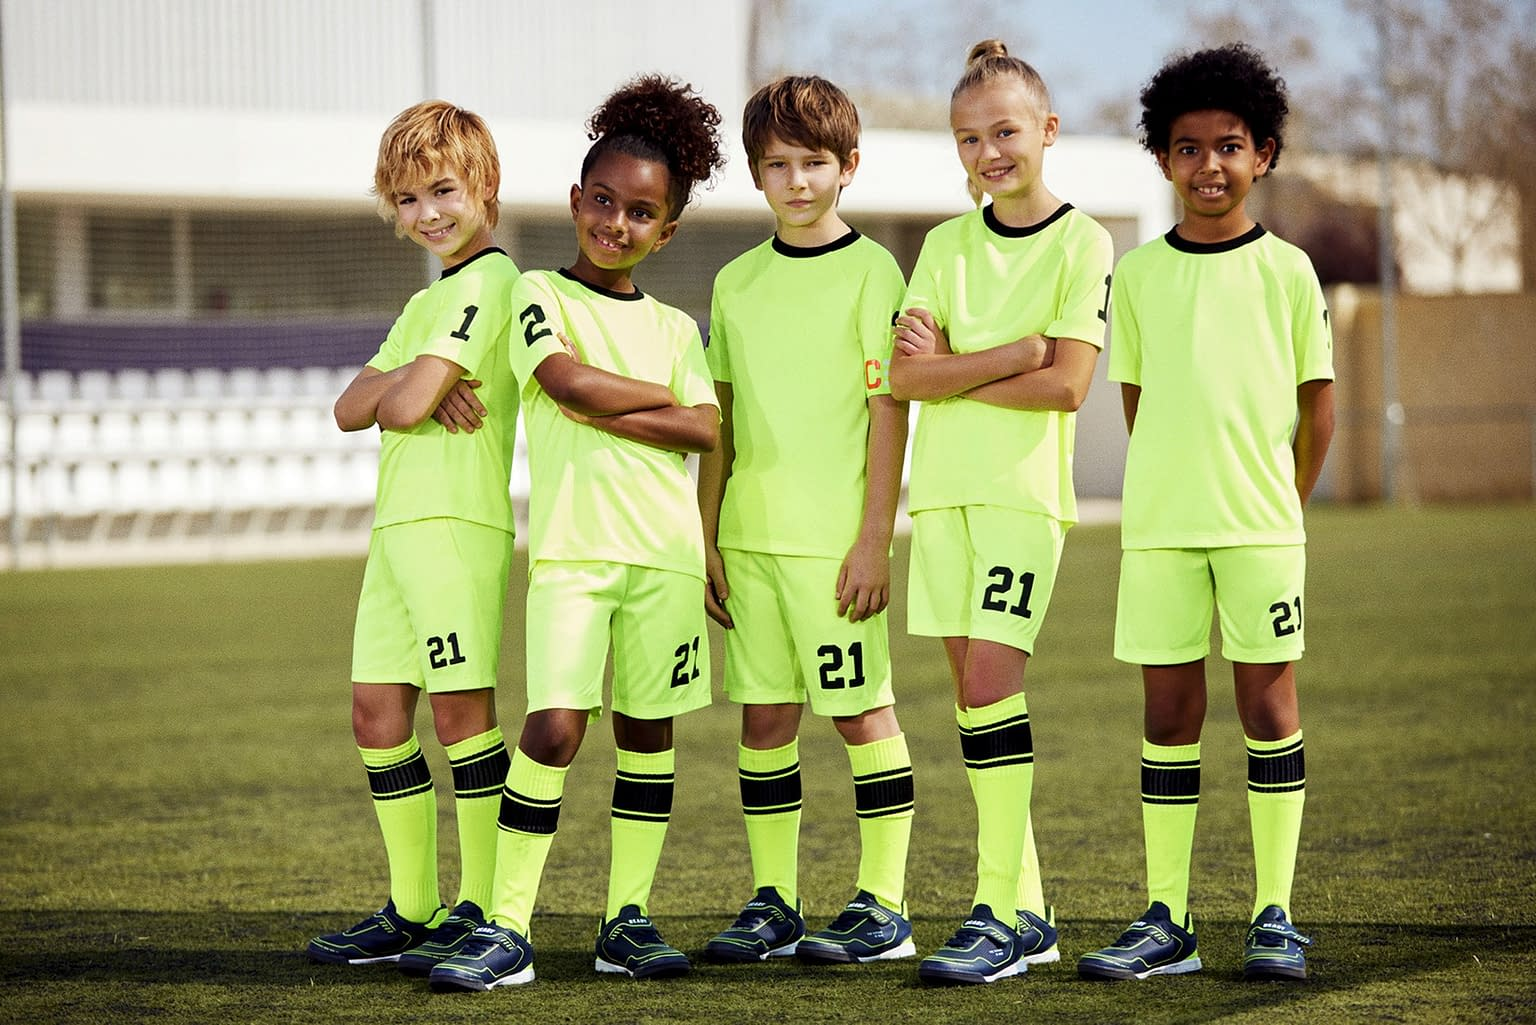 FOOTBALL-KIDS-COLLECTION-PHOTO-09-BY-ENRIC-GALCERAN